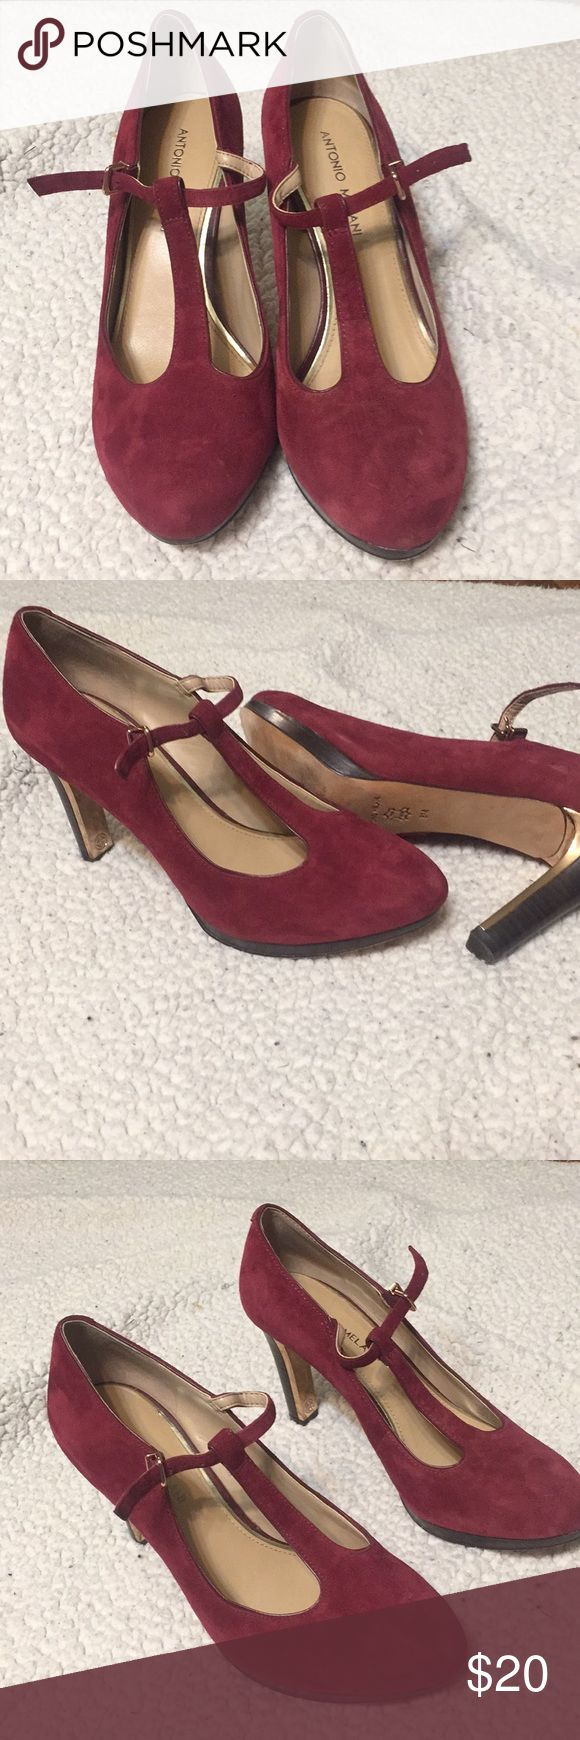 Antonio melani t strap suede leather heels Antonio melani burgundy suede leather heels. Size 8. Worn once. Cute wood and gold heel detail. Very comfortable heels. T strap. ANTONIO MELANI Shoes Heels